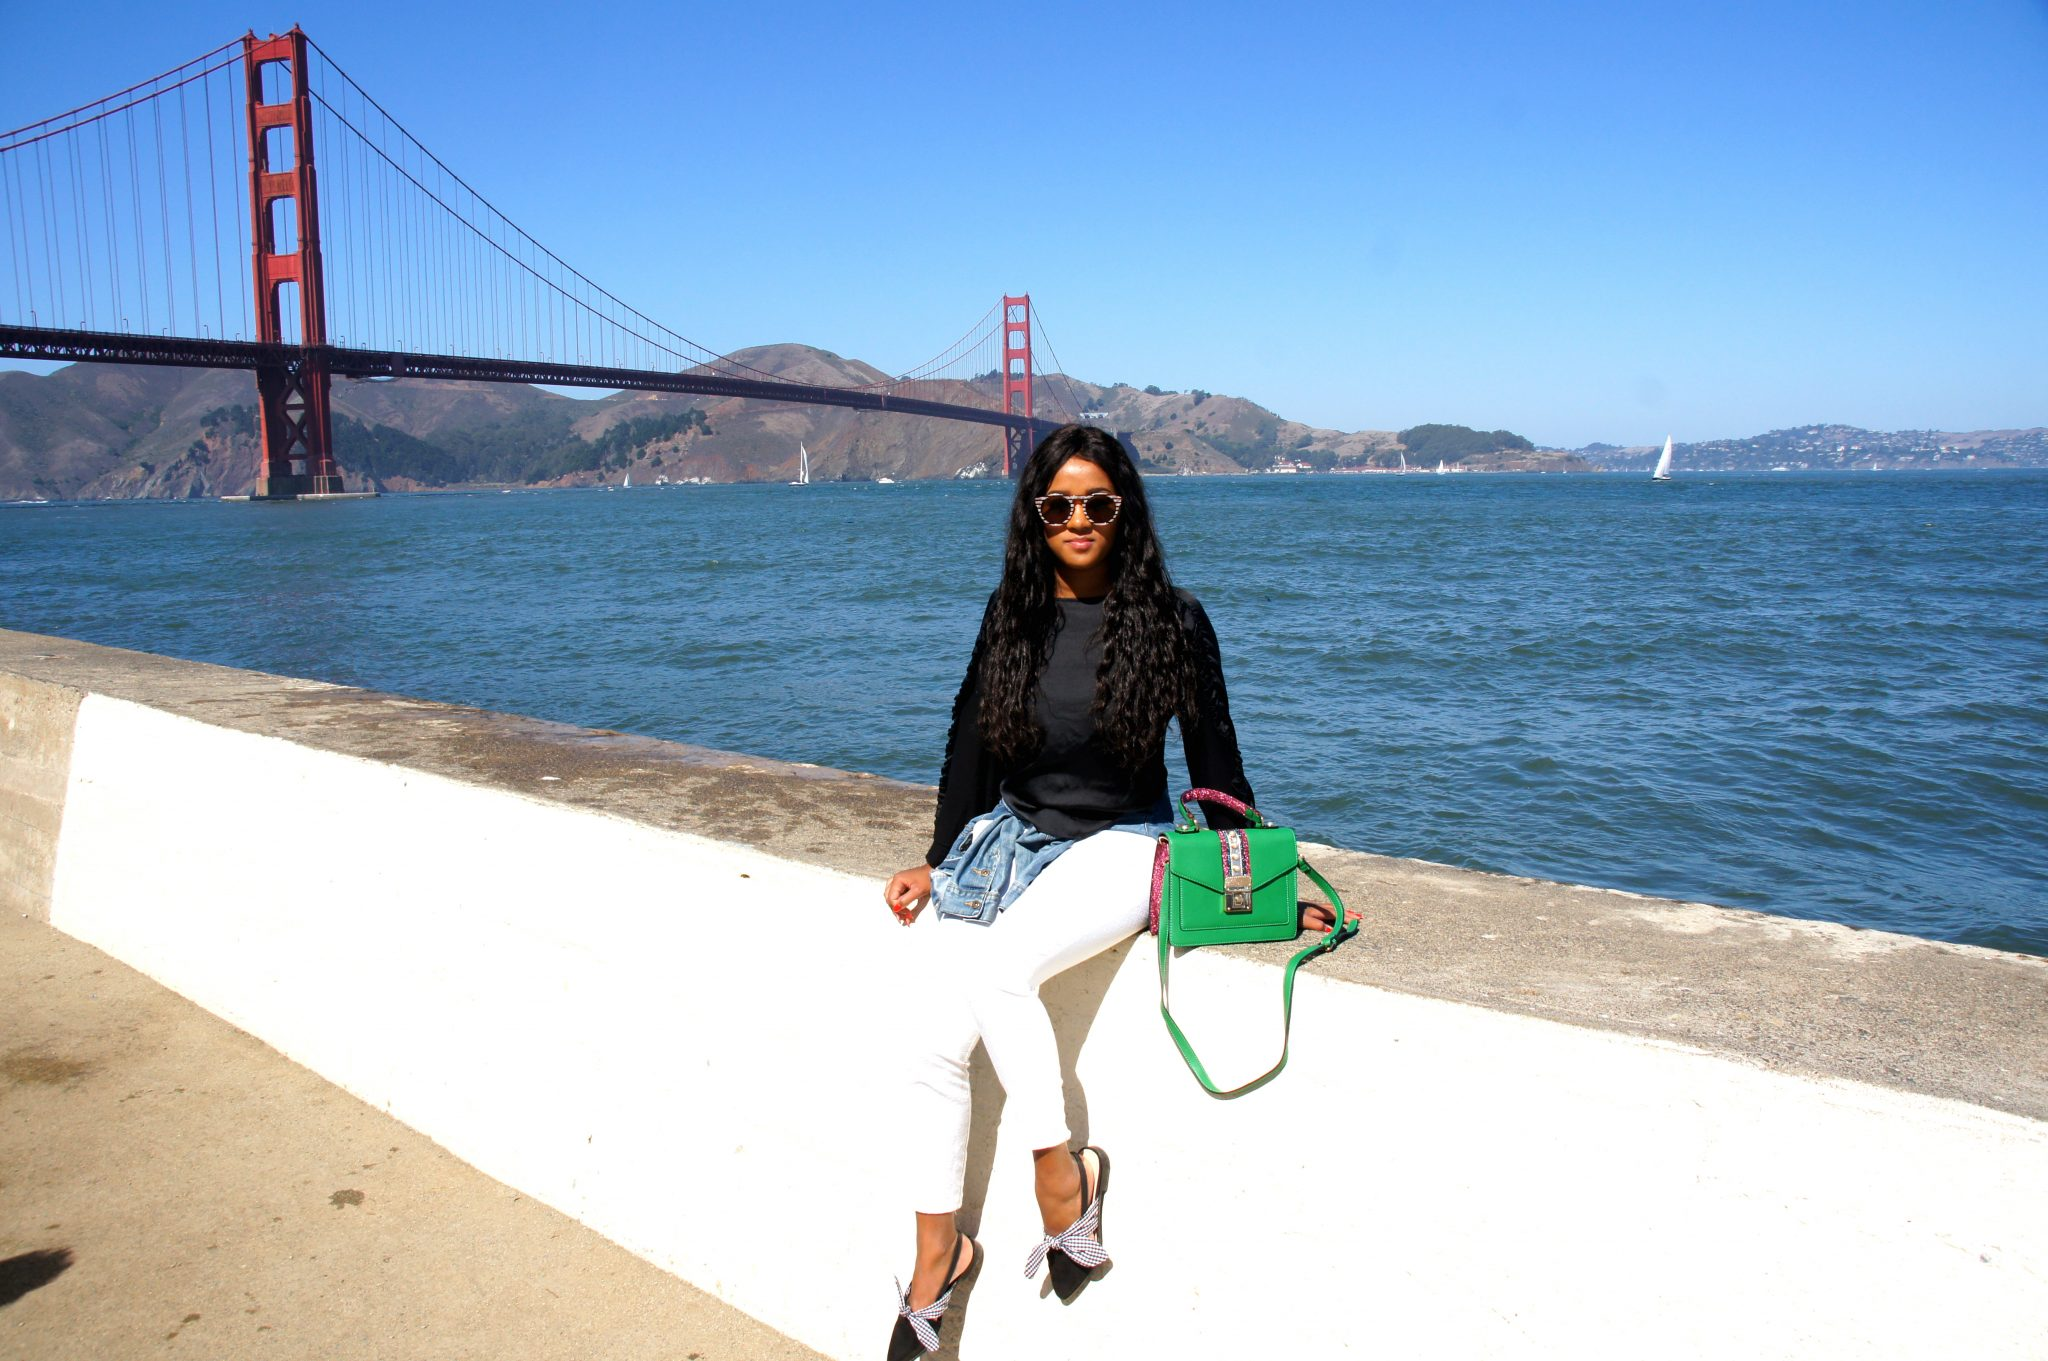 Me in front of the Golden Gate Bridge in San Francisco